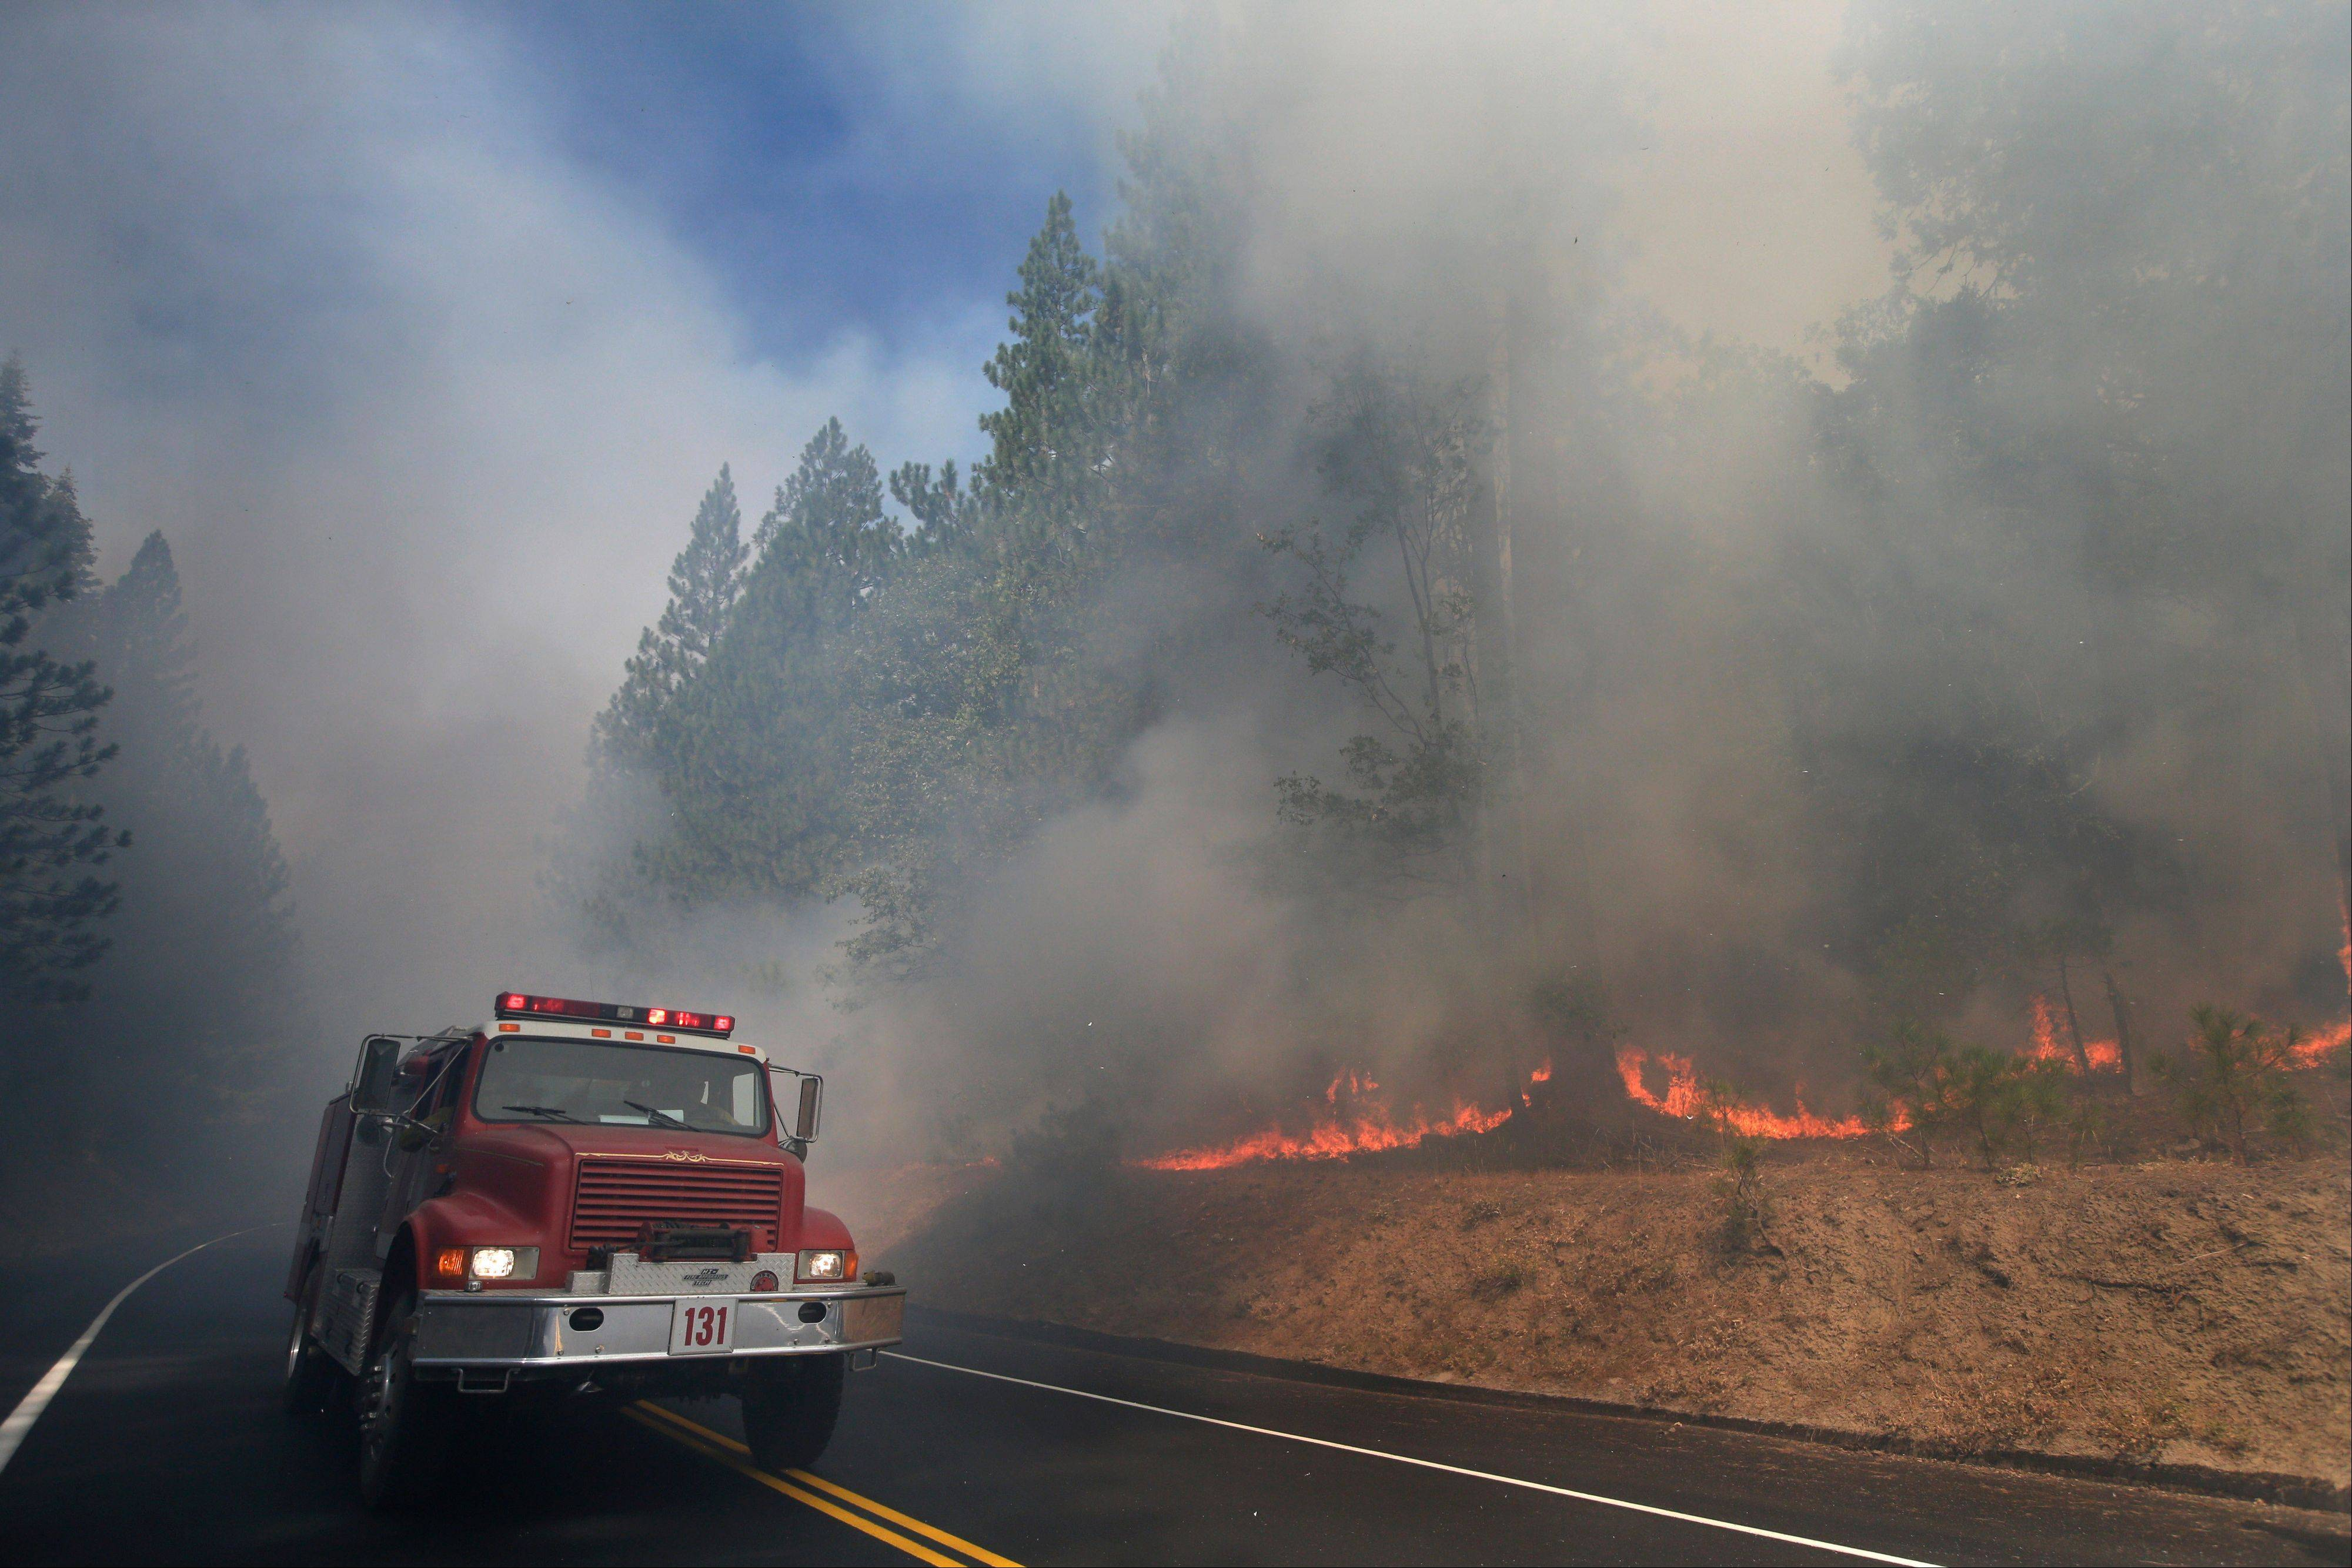 A fire truck drives past burning trees as firefighters continue to battle the Rim Fire near Yosemite National Park, Calif., Monday. Crews working to contain one of California�s largest-ever wildfires gained some ground against the flames threatening San Francisco�s water supply, several towns near Yosemite National Park and historic giant sequoias.